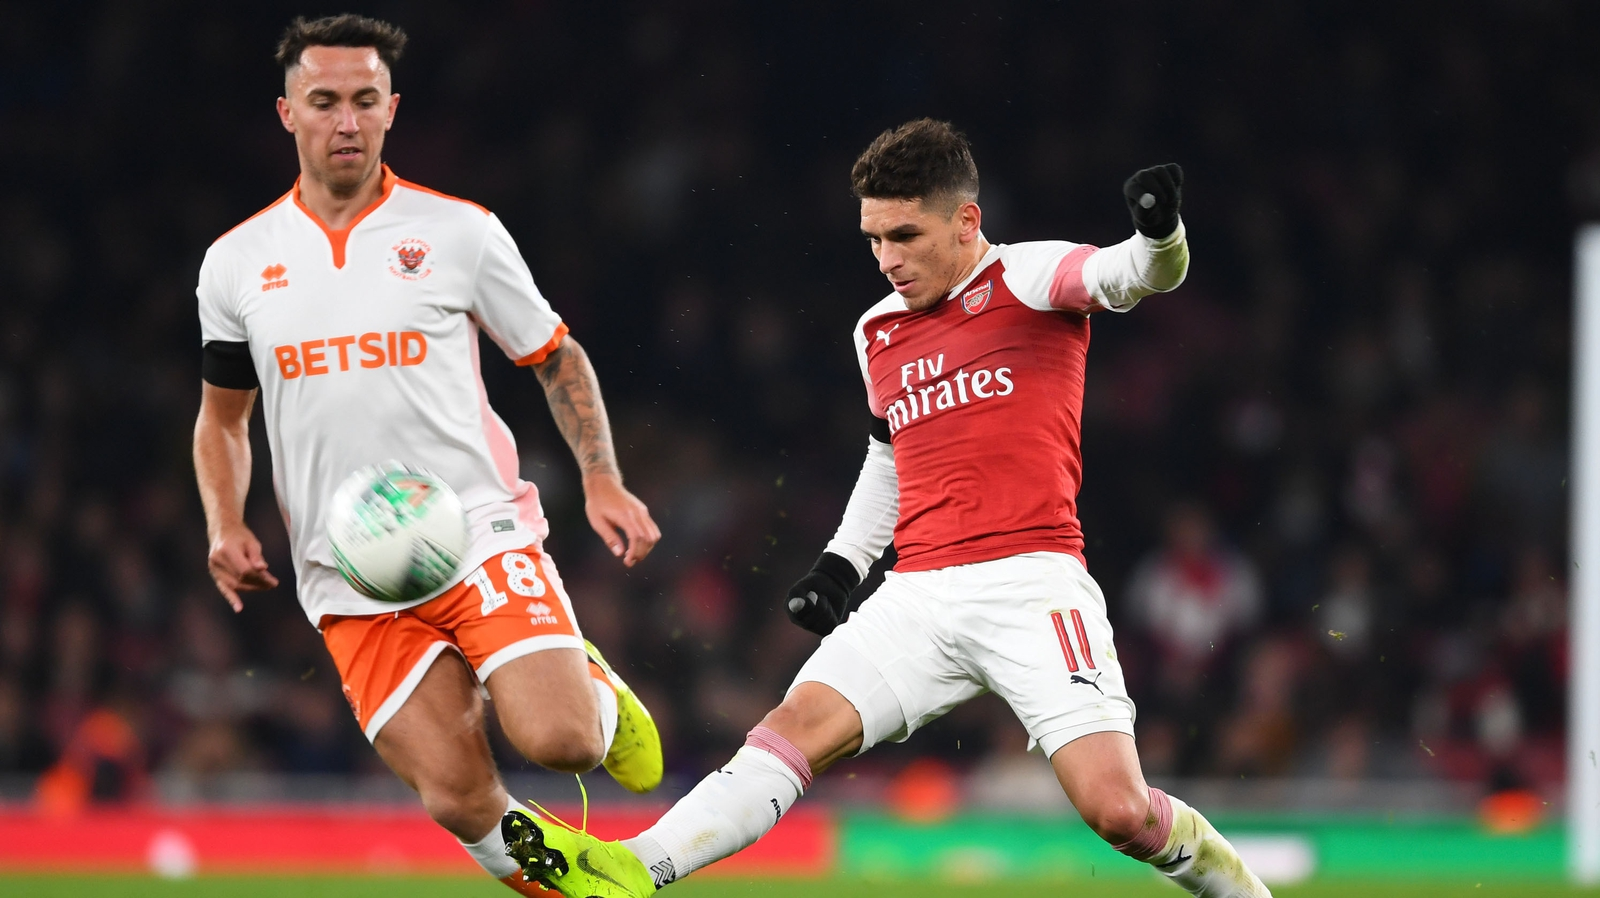 Image - Arsenal's Lucas Torreira fends off John O'Sullivan in the Carabao Cup last year